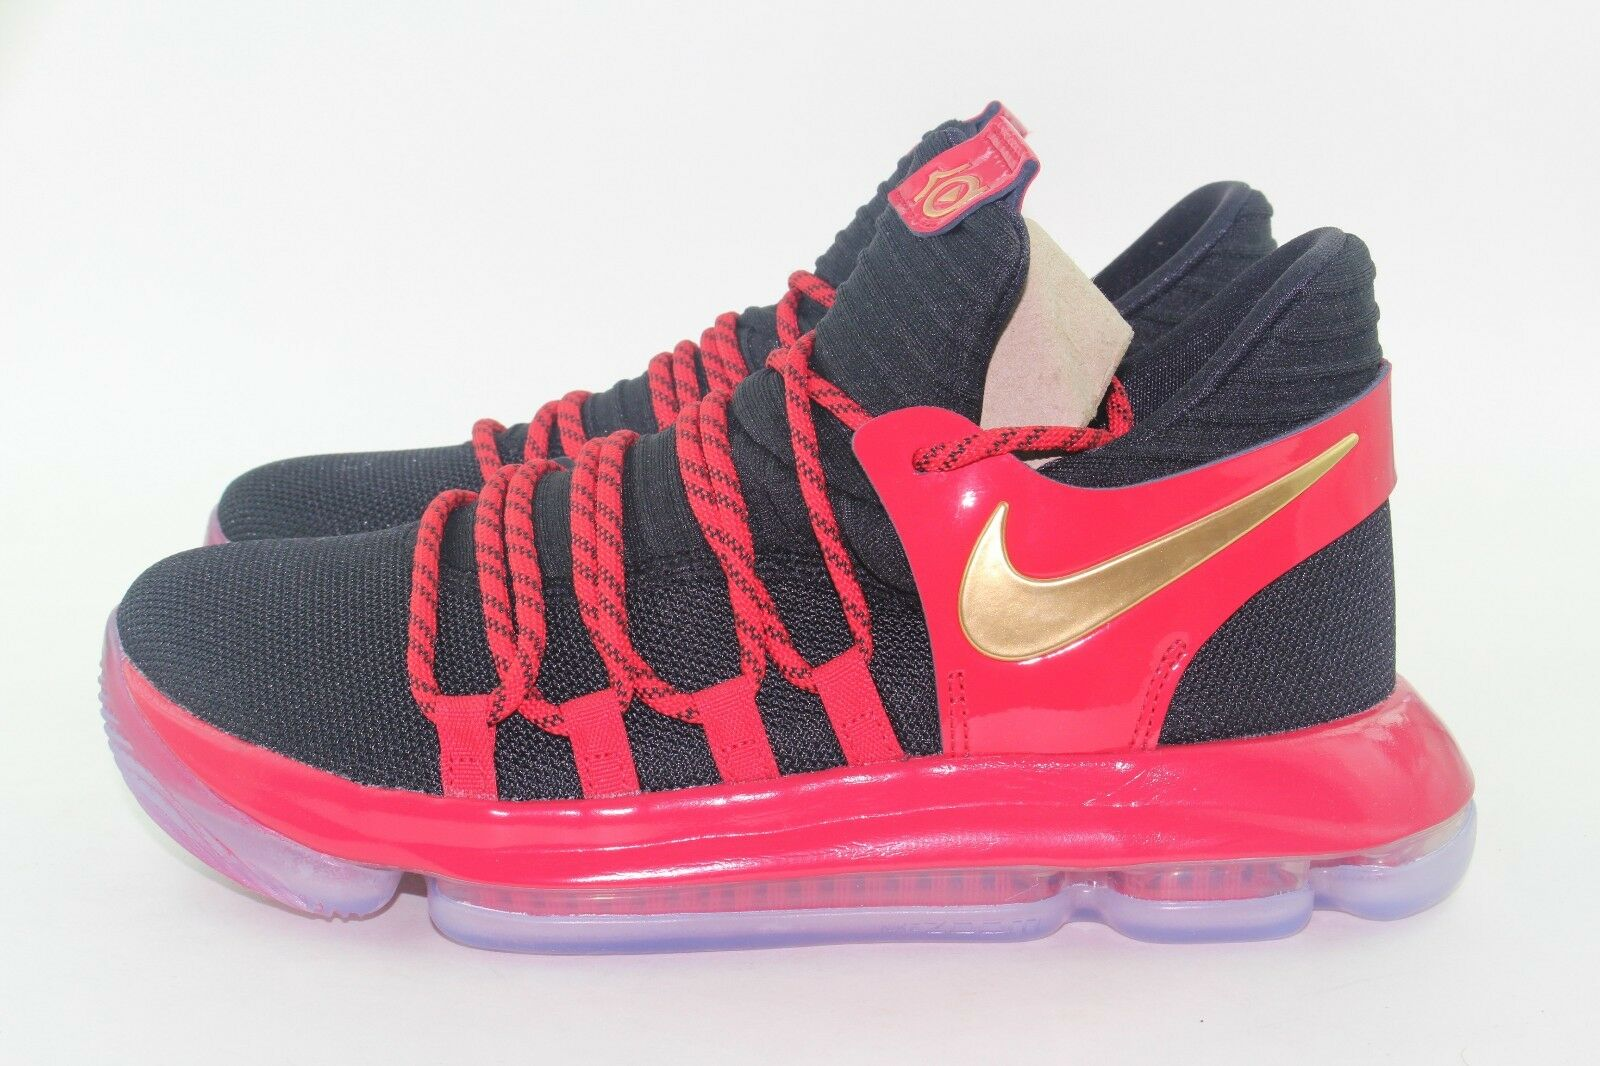 KD 10 LE YOUTH 6.5 SAME AS WOMAN 8.0 NEW YOUTH COLOR WAY ONLY